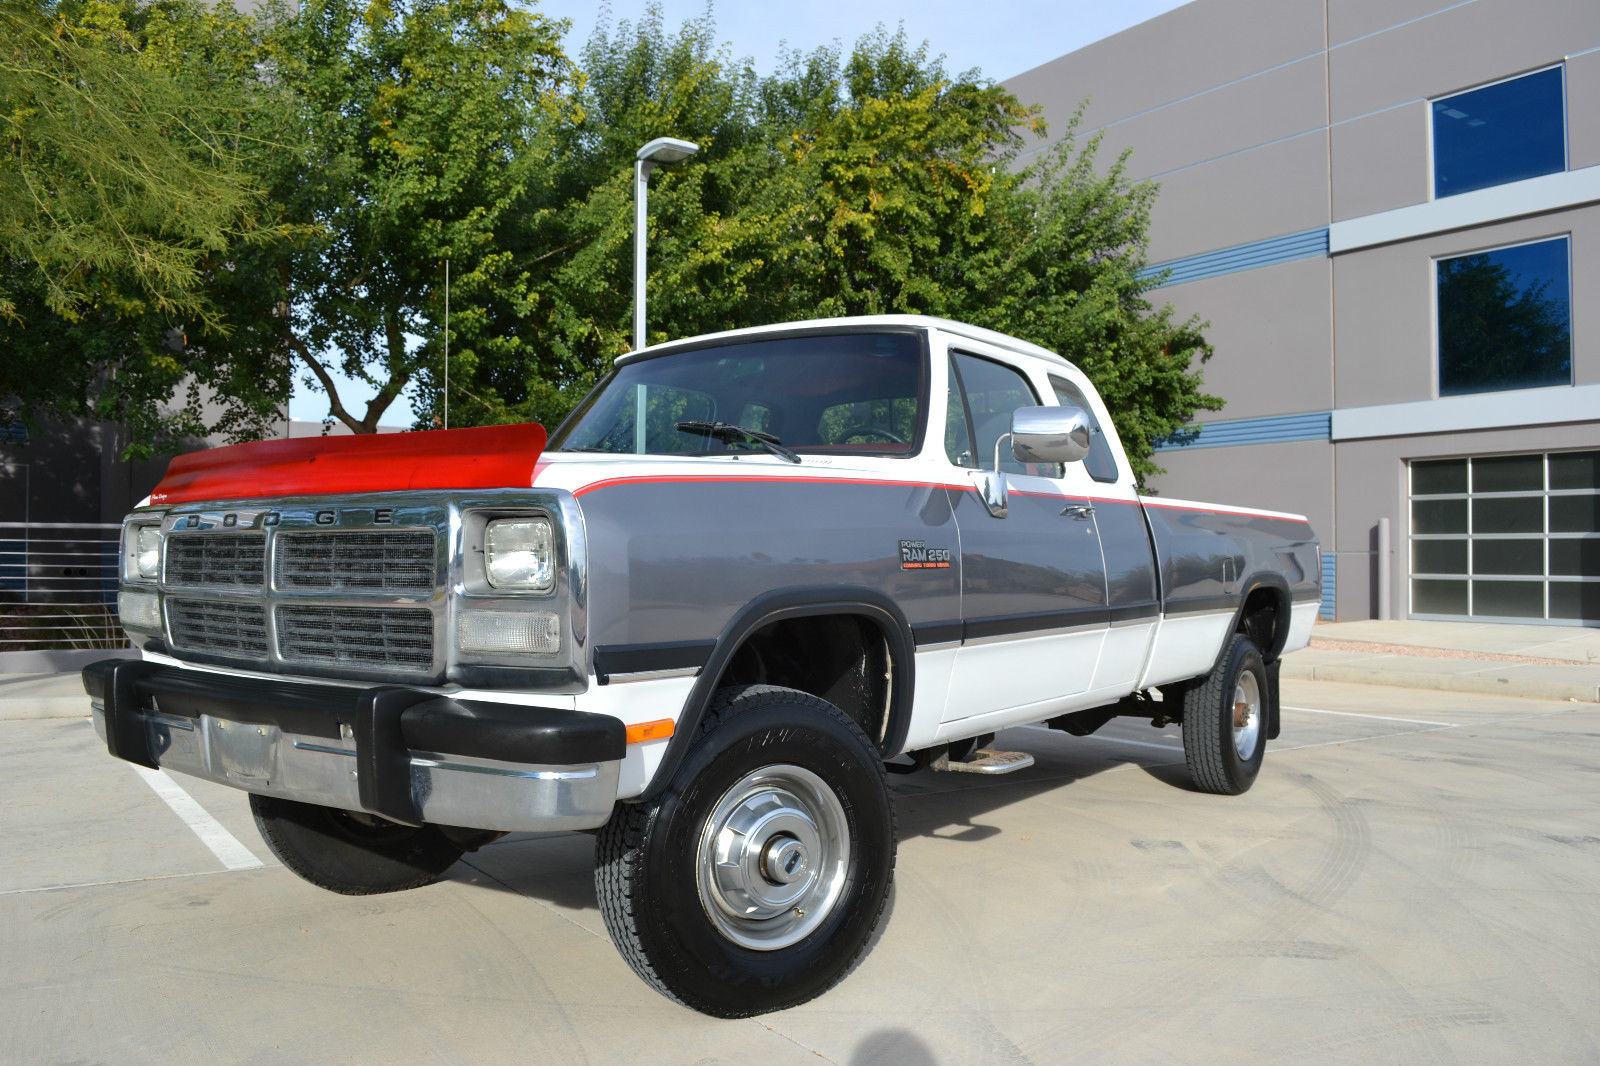 1993 dodge ram 2500 4x4 diesel auto le low miles 1 owner. Black Bedroom Furniture Sets. Home Design Ideas